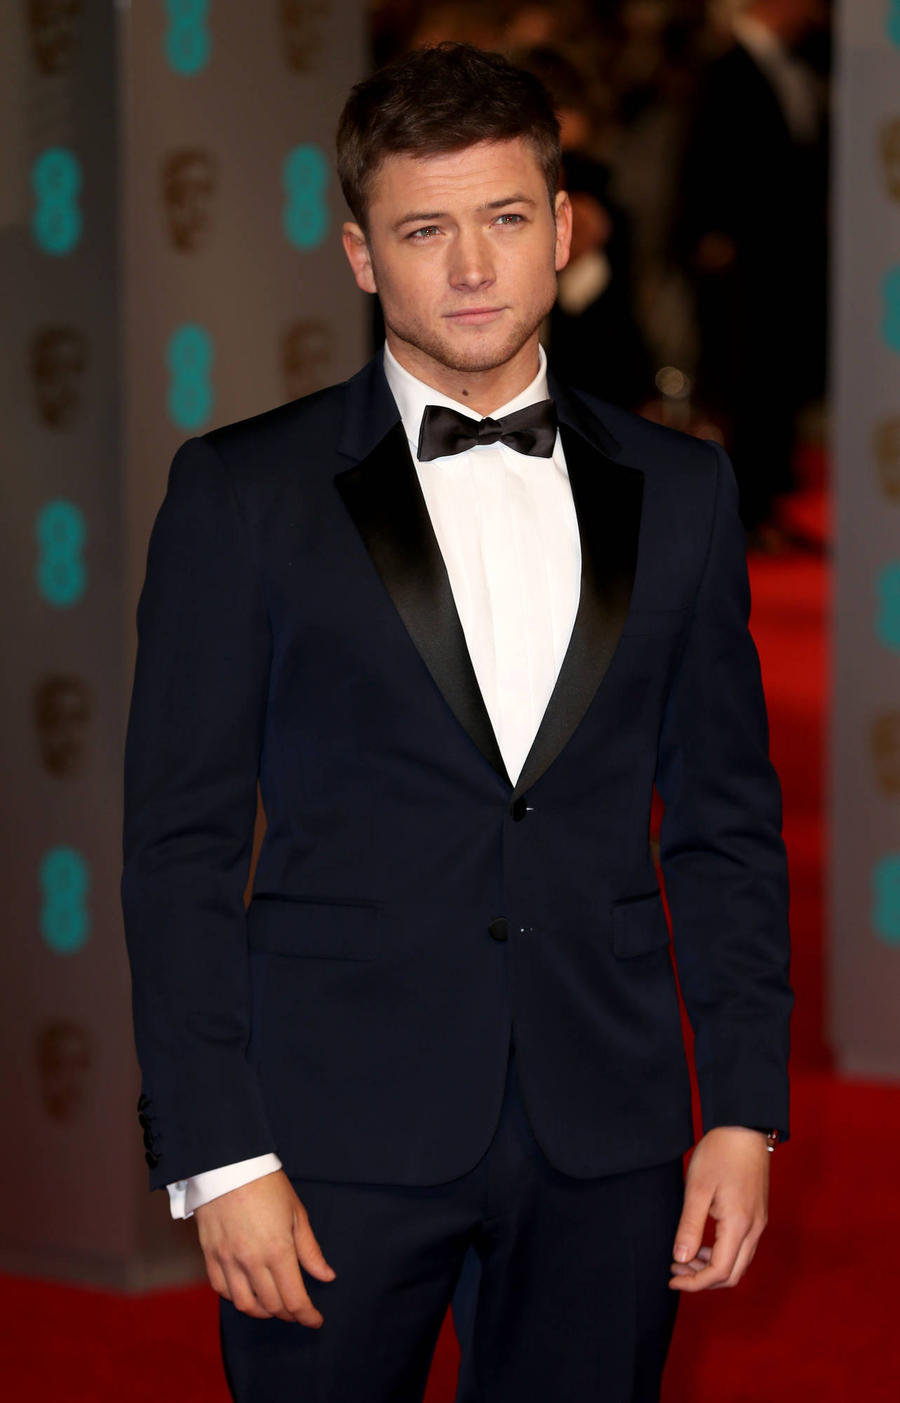 Taron Egerton Dressed Up On Tv To Win Eddie The Eagle Role